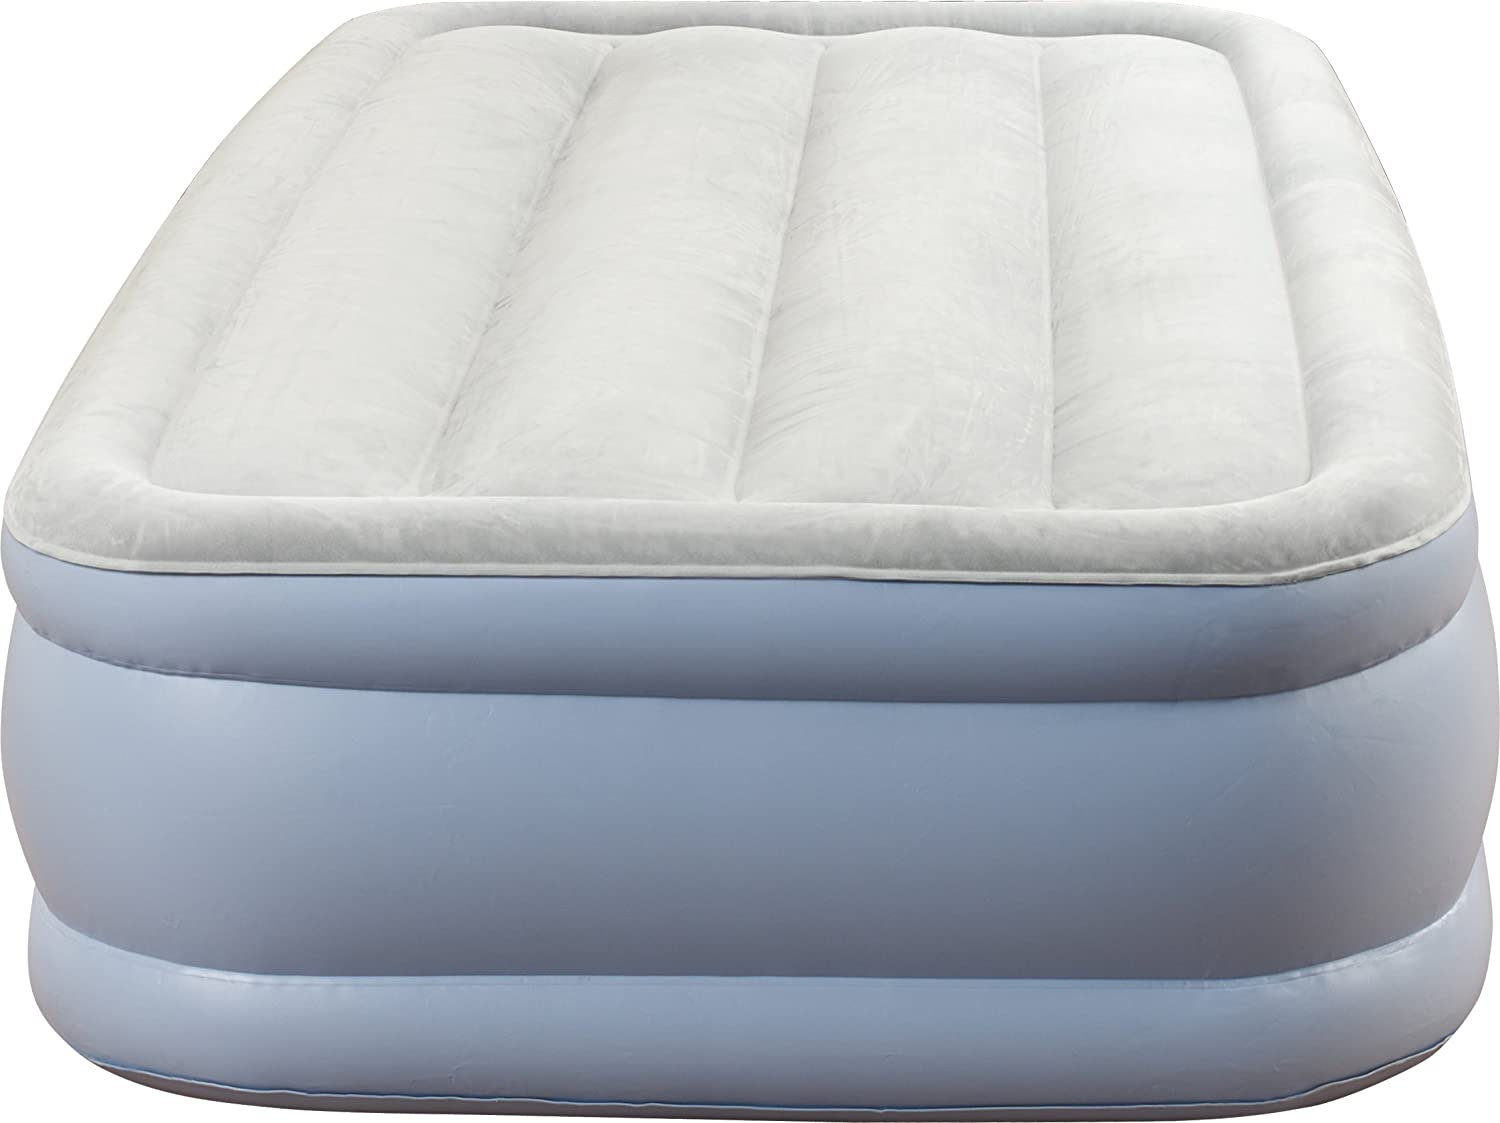 Simmons Beautyrest 15-Inch Twin Hi-Loft Express Air Bed with Pump by Simmons B002IOM5LI